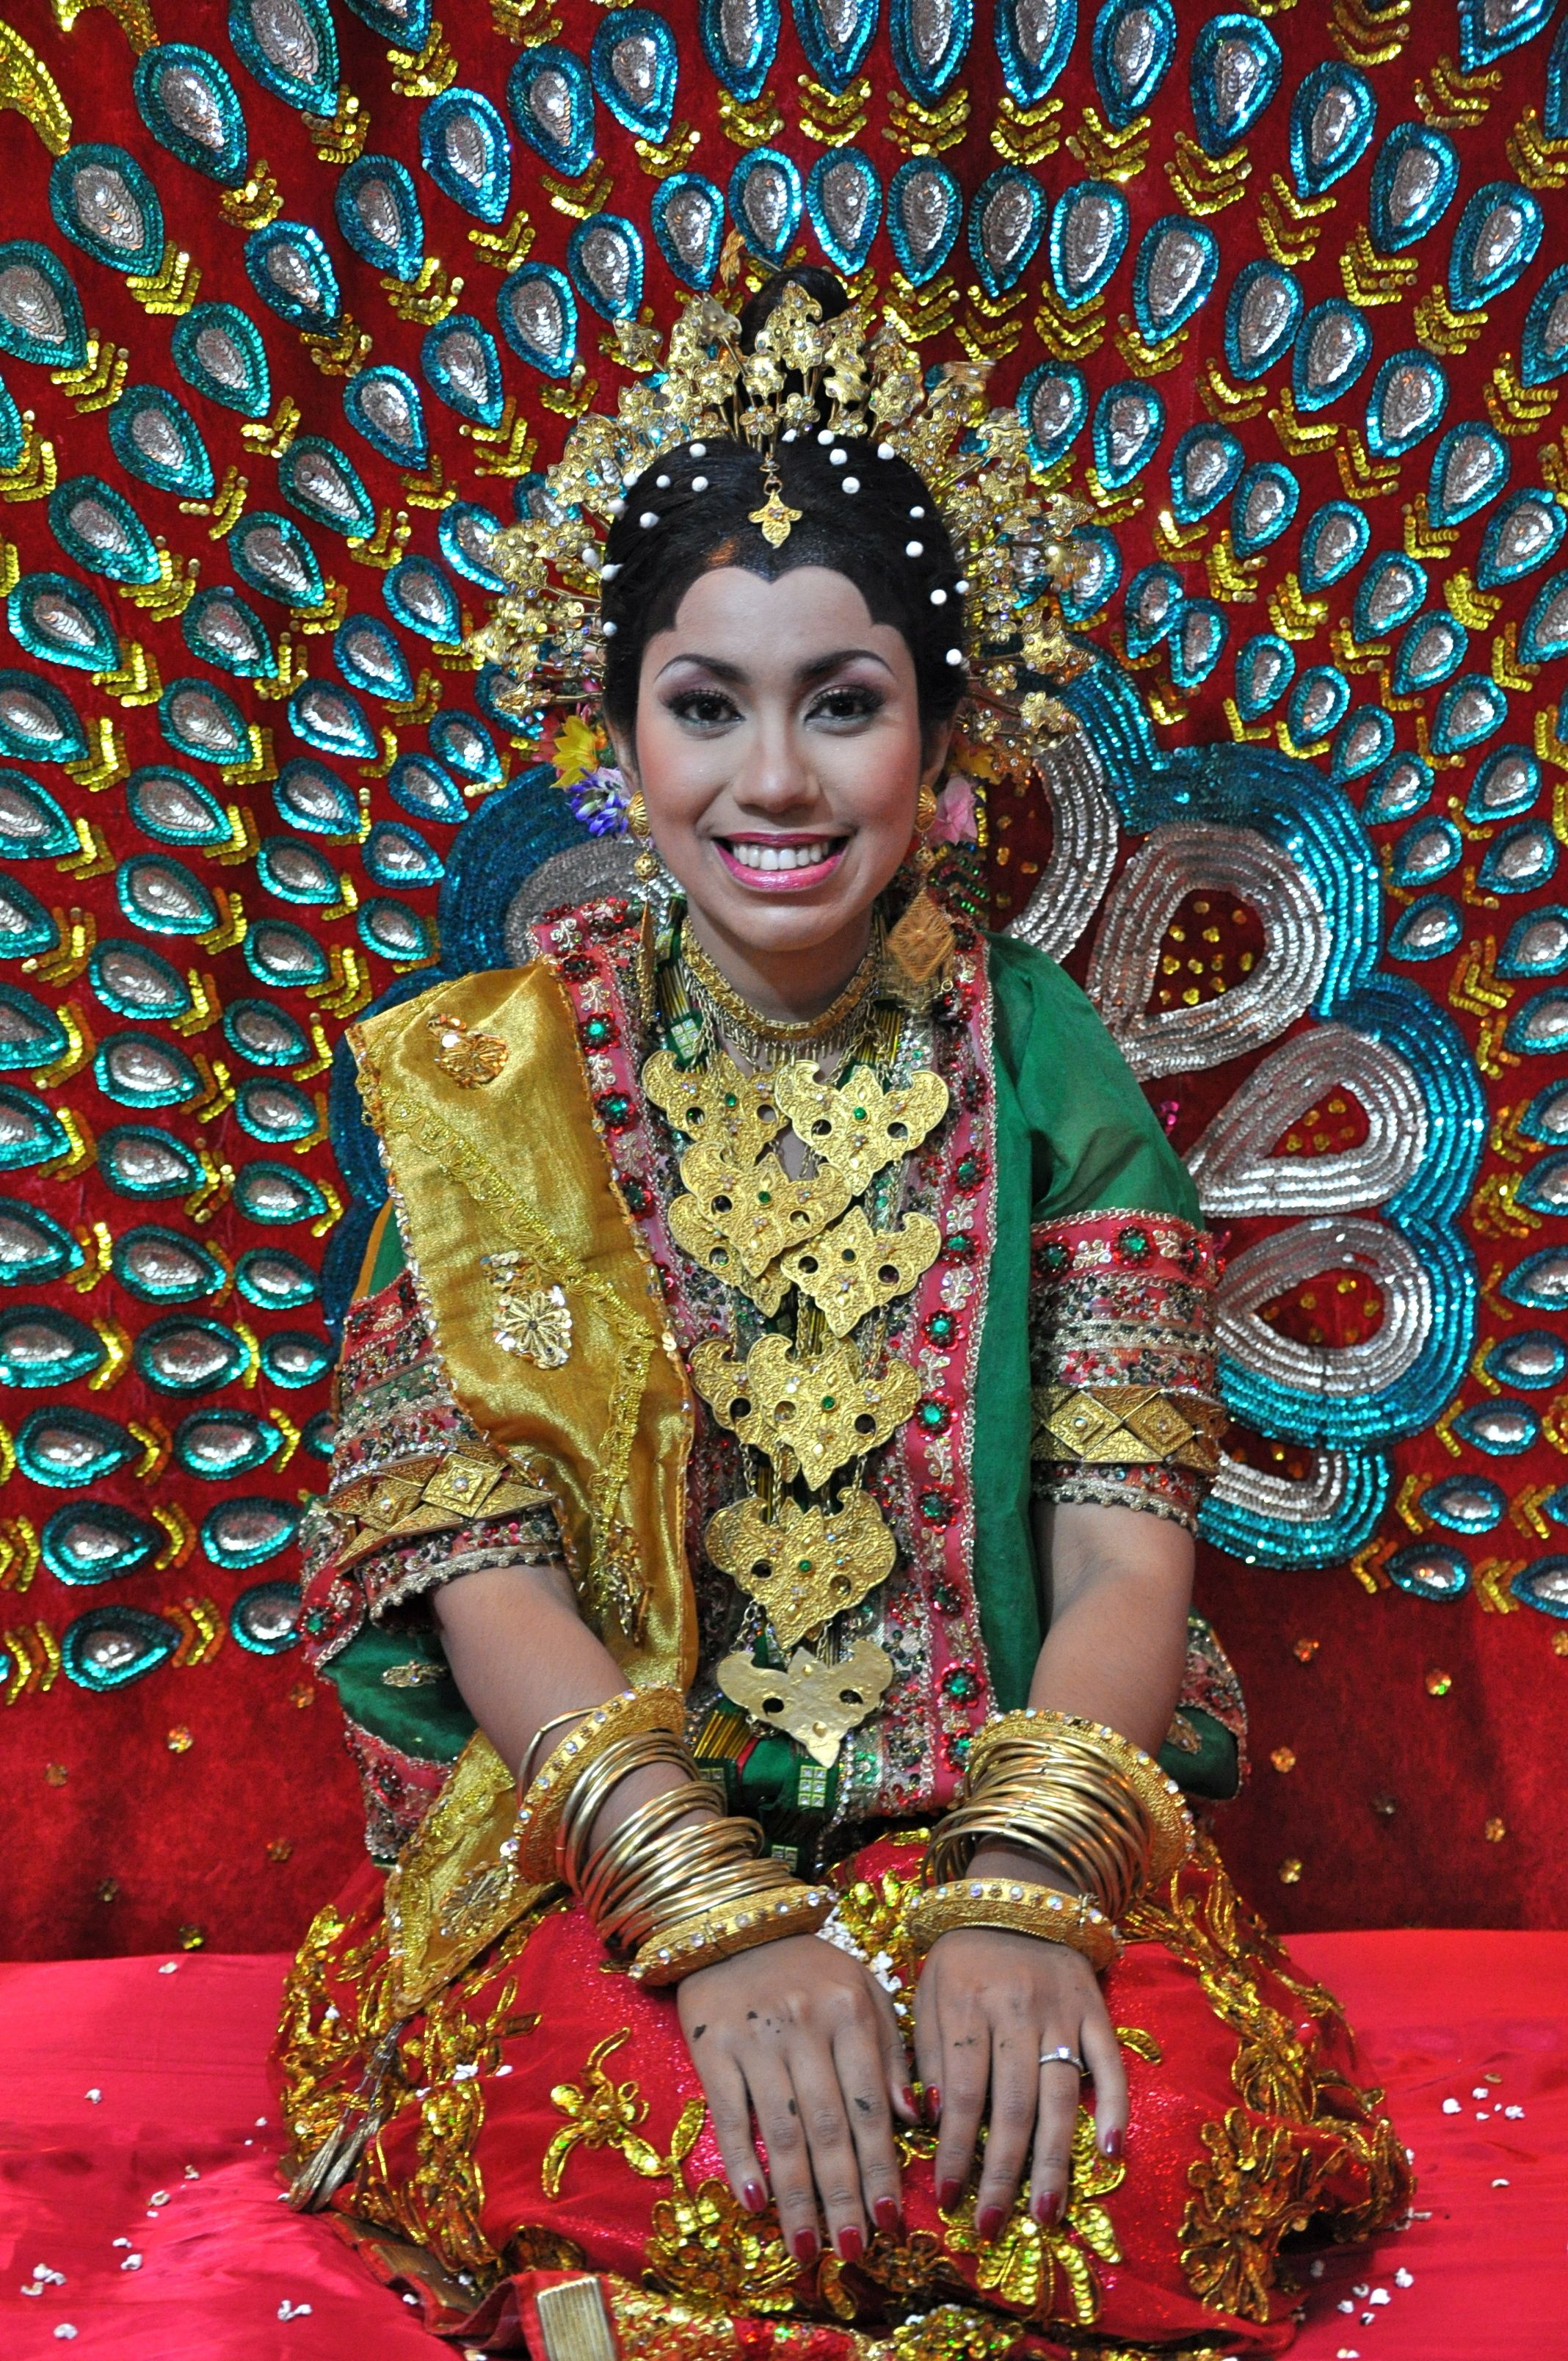 Bali traditional costume photo 15 Awesome DIY